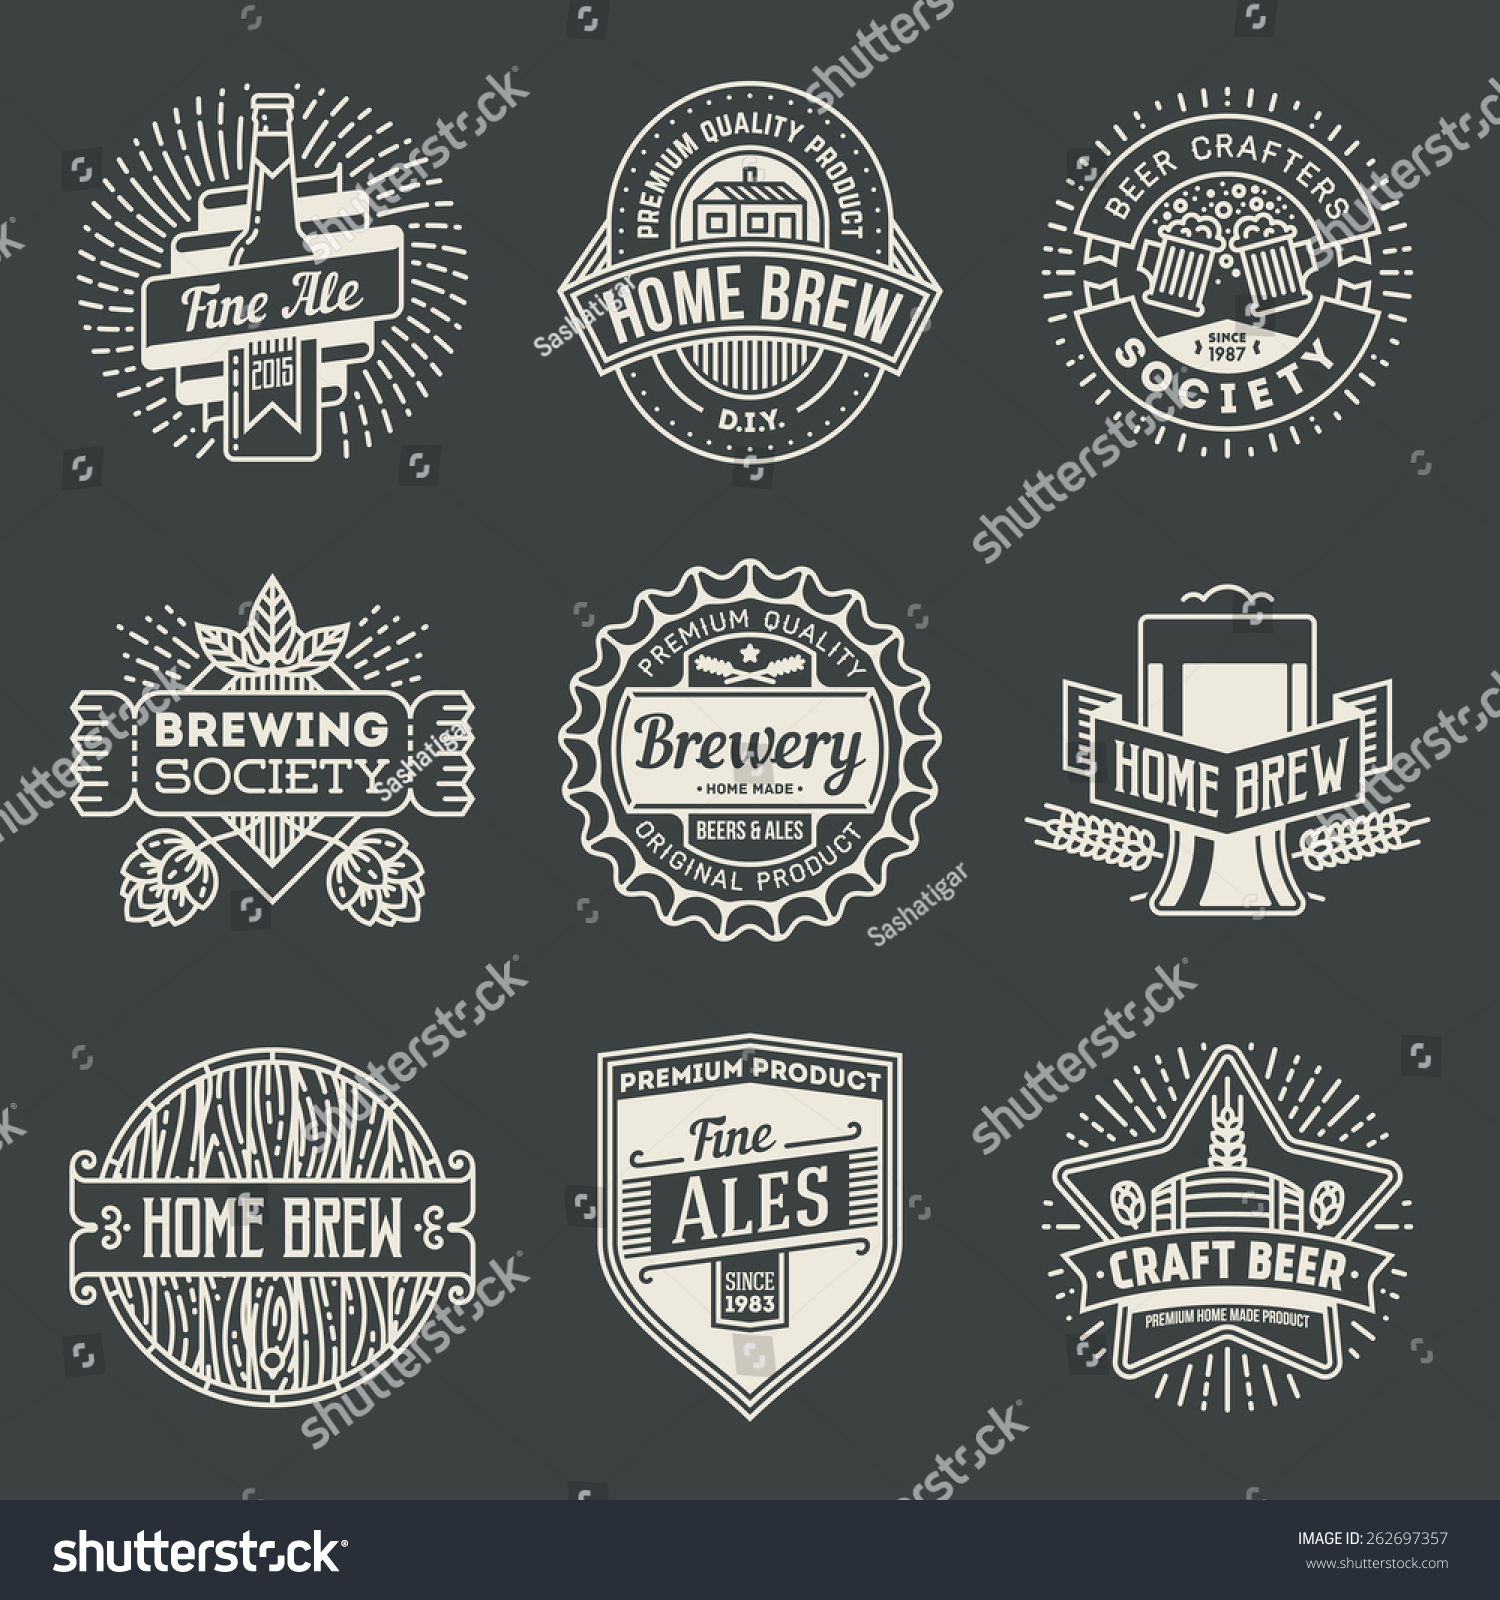 retro design insignias line art logotypes home brewery set 2 vector high quality vintage elements - Home Brewery Design